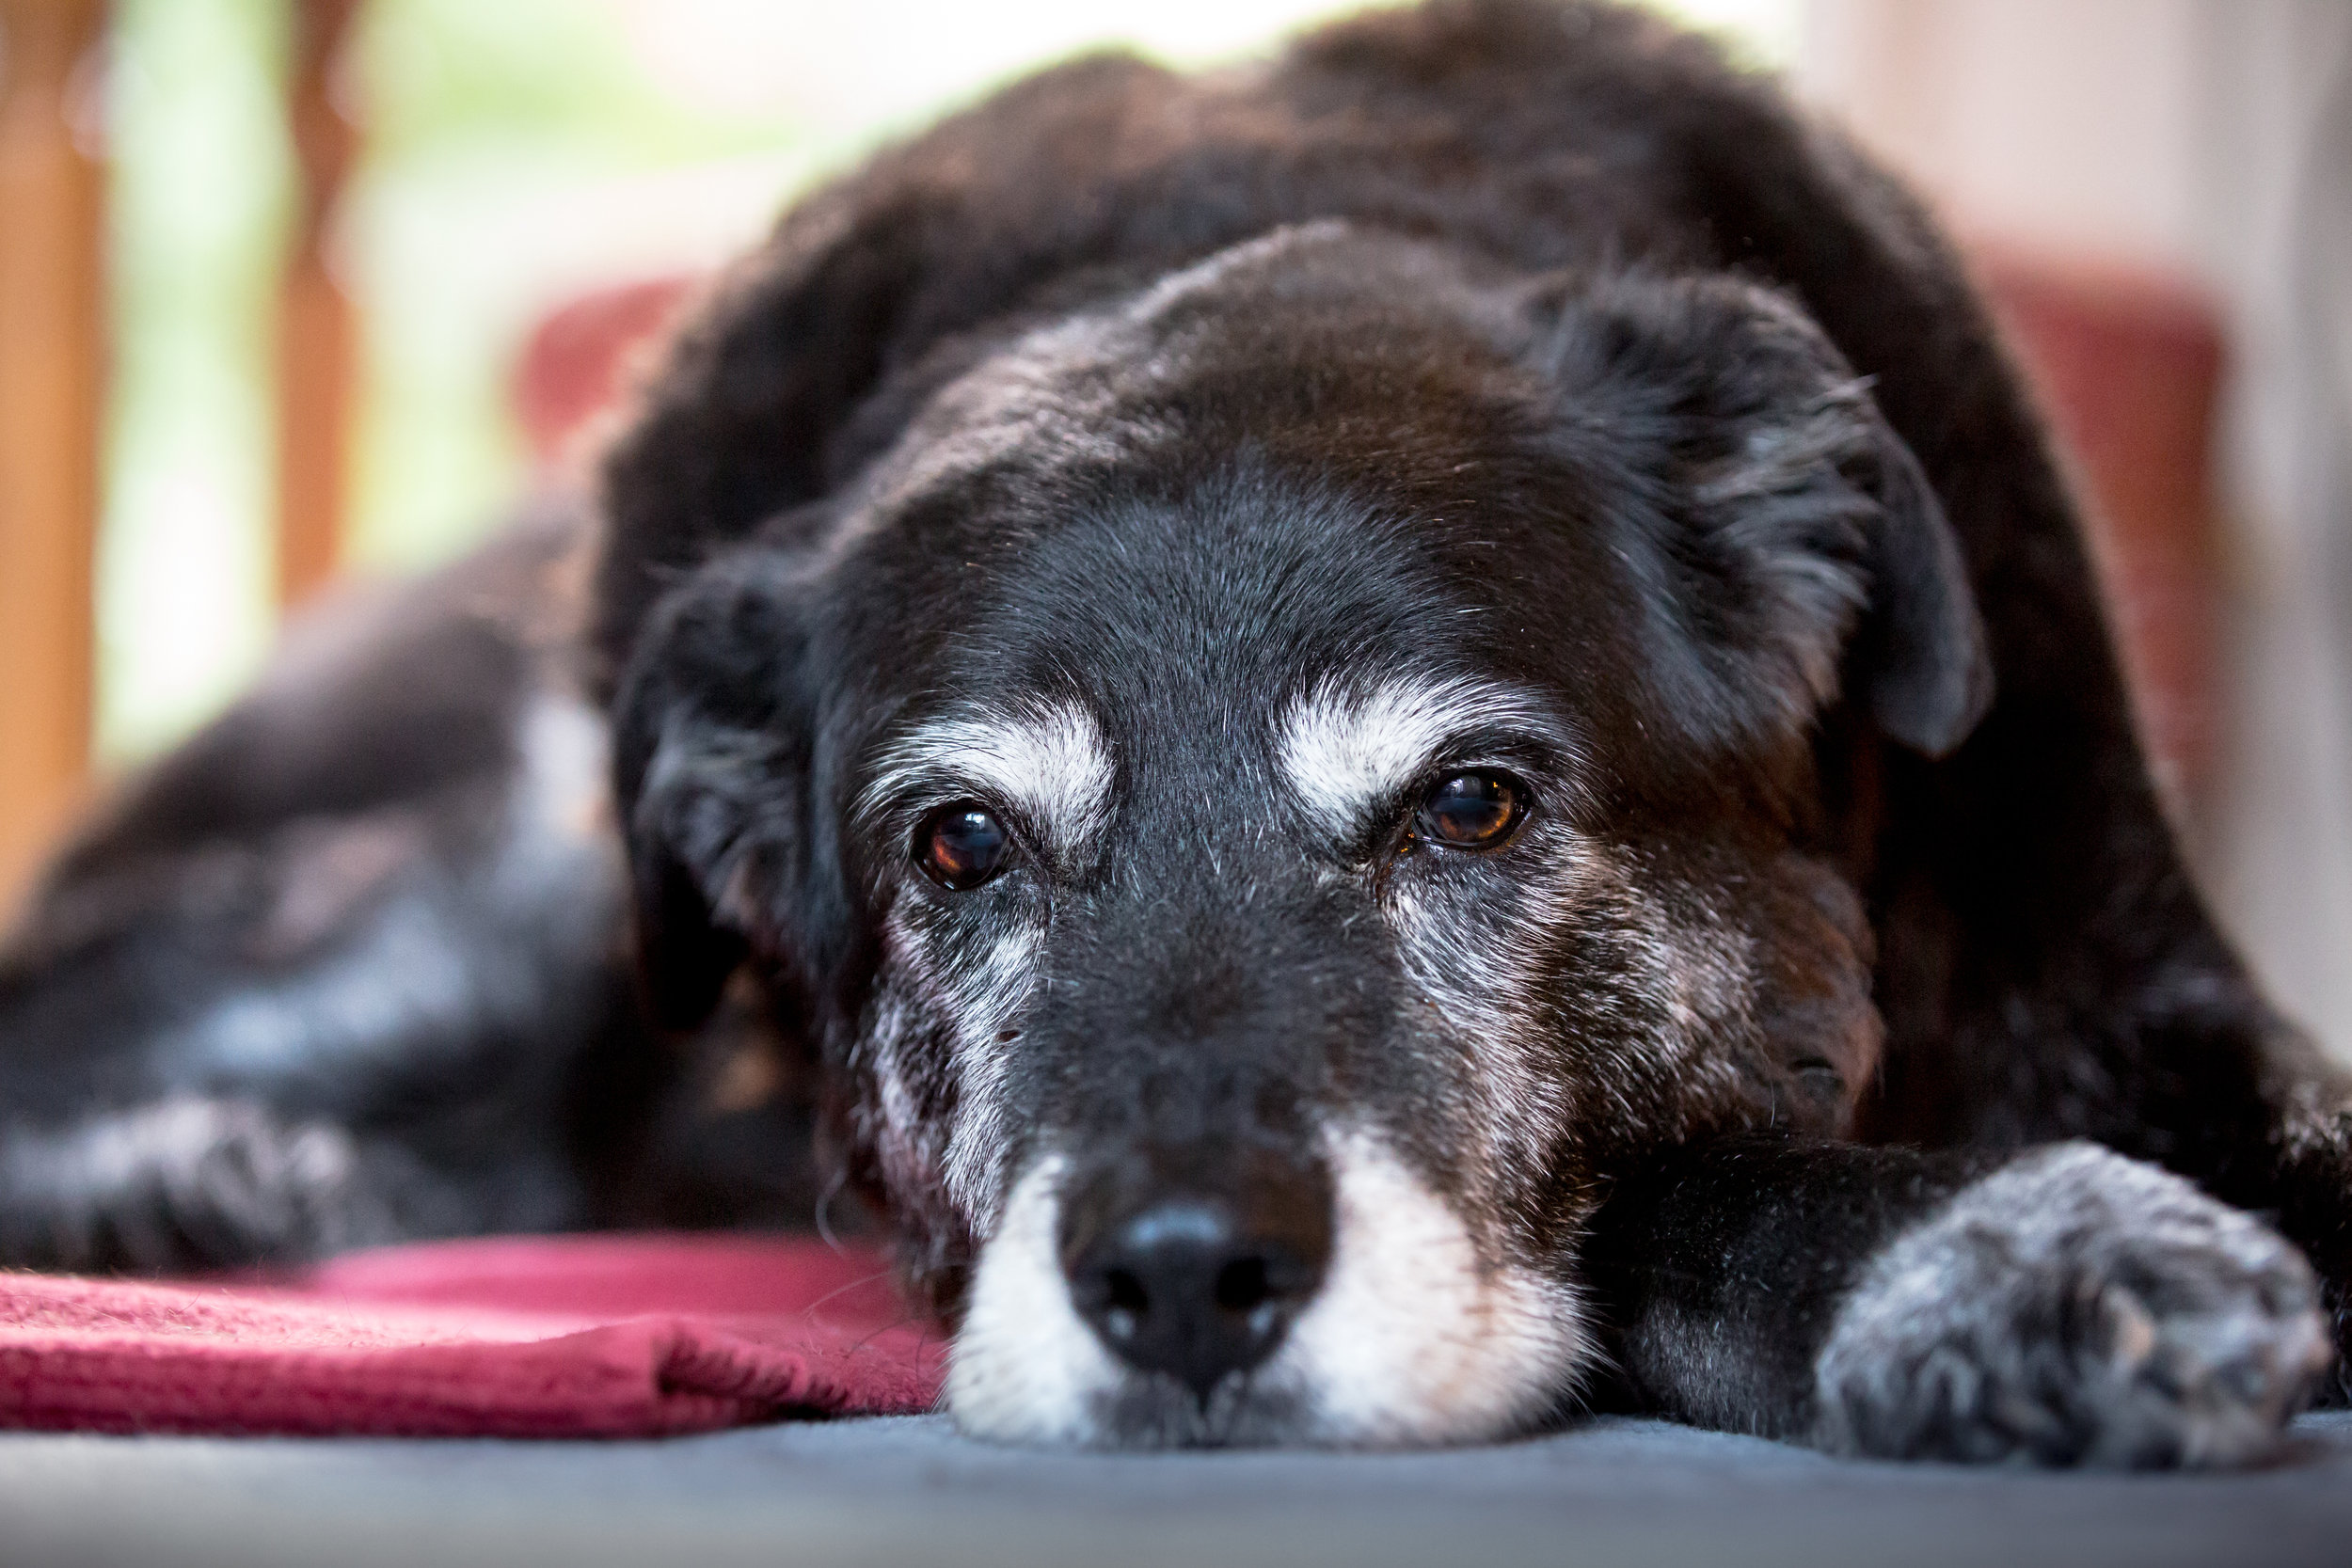 Old dog with arthritis